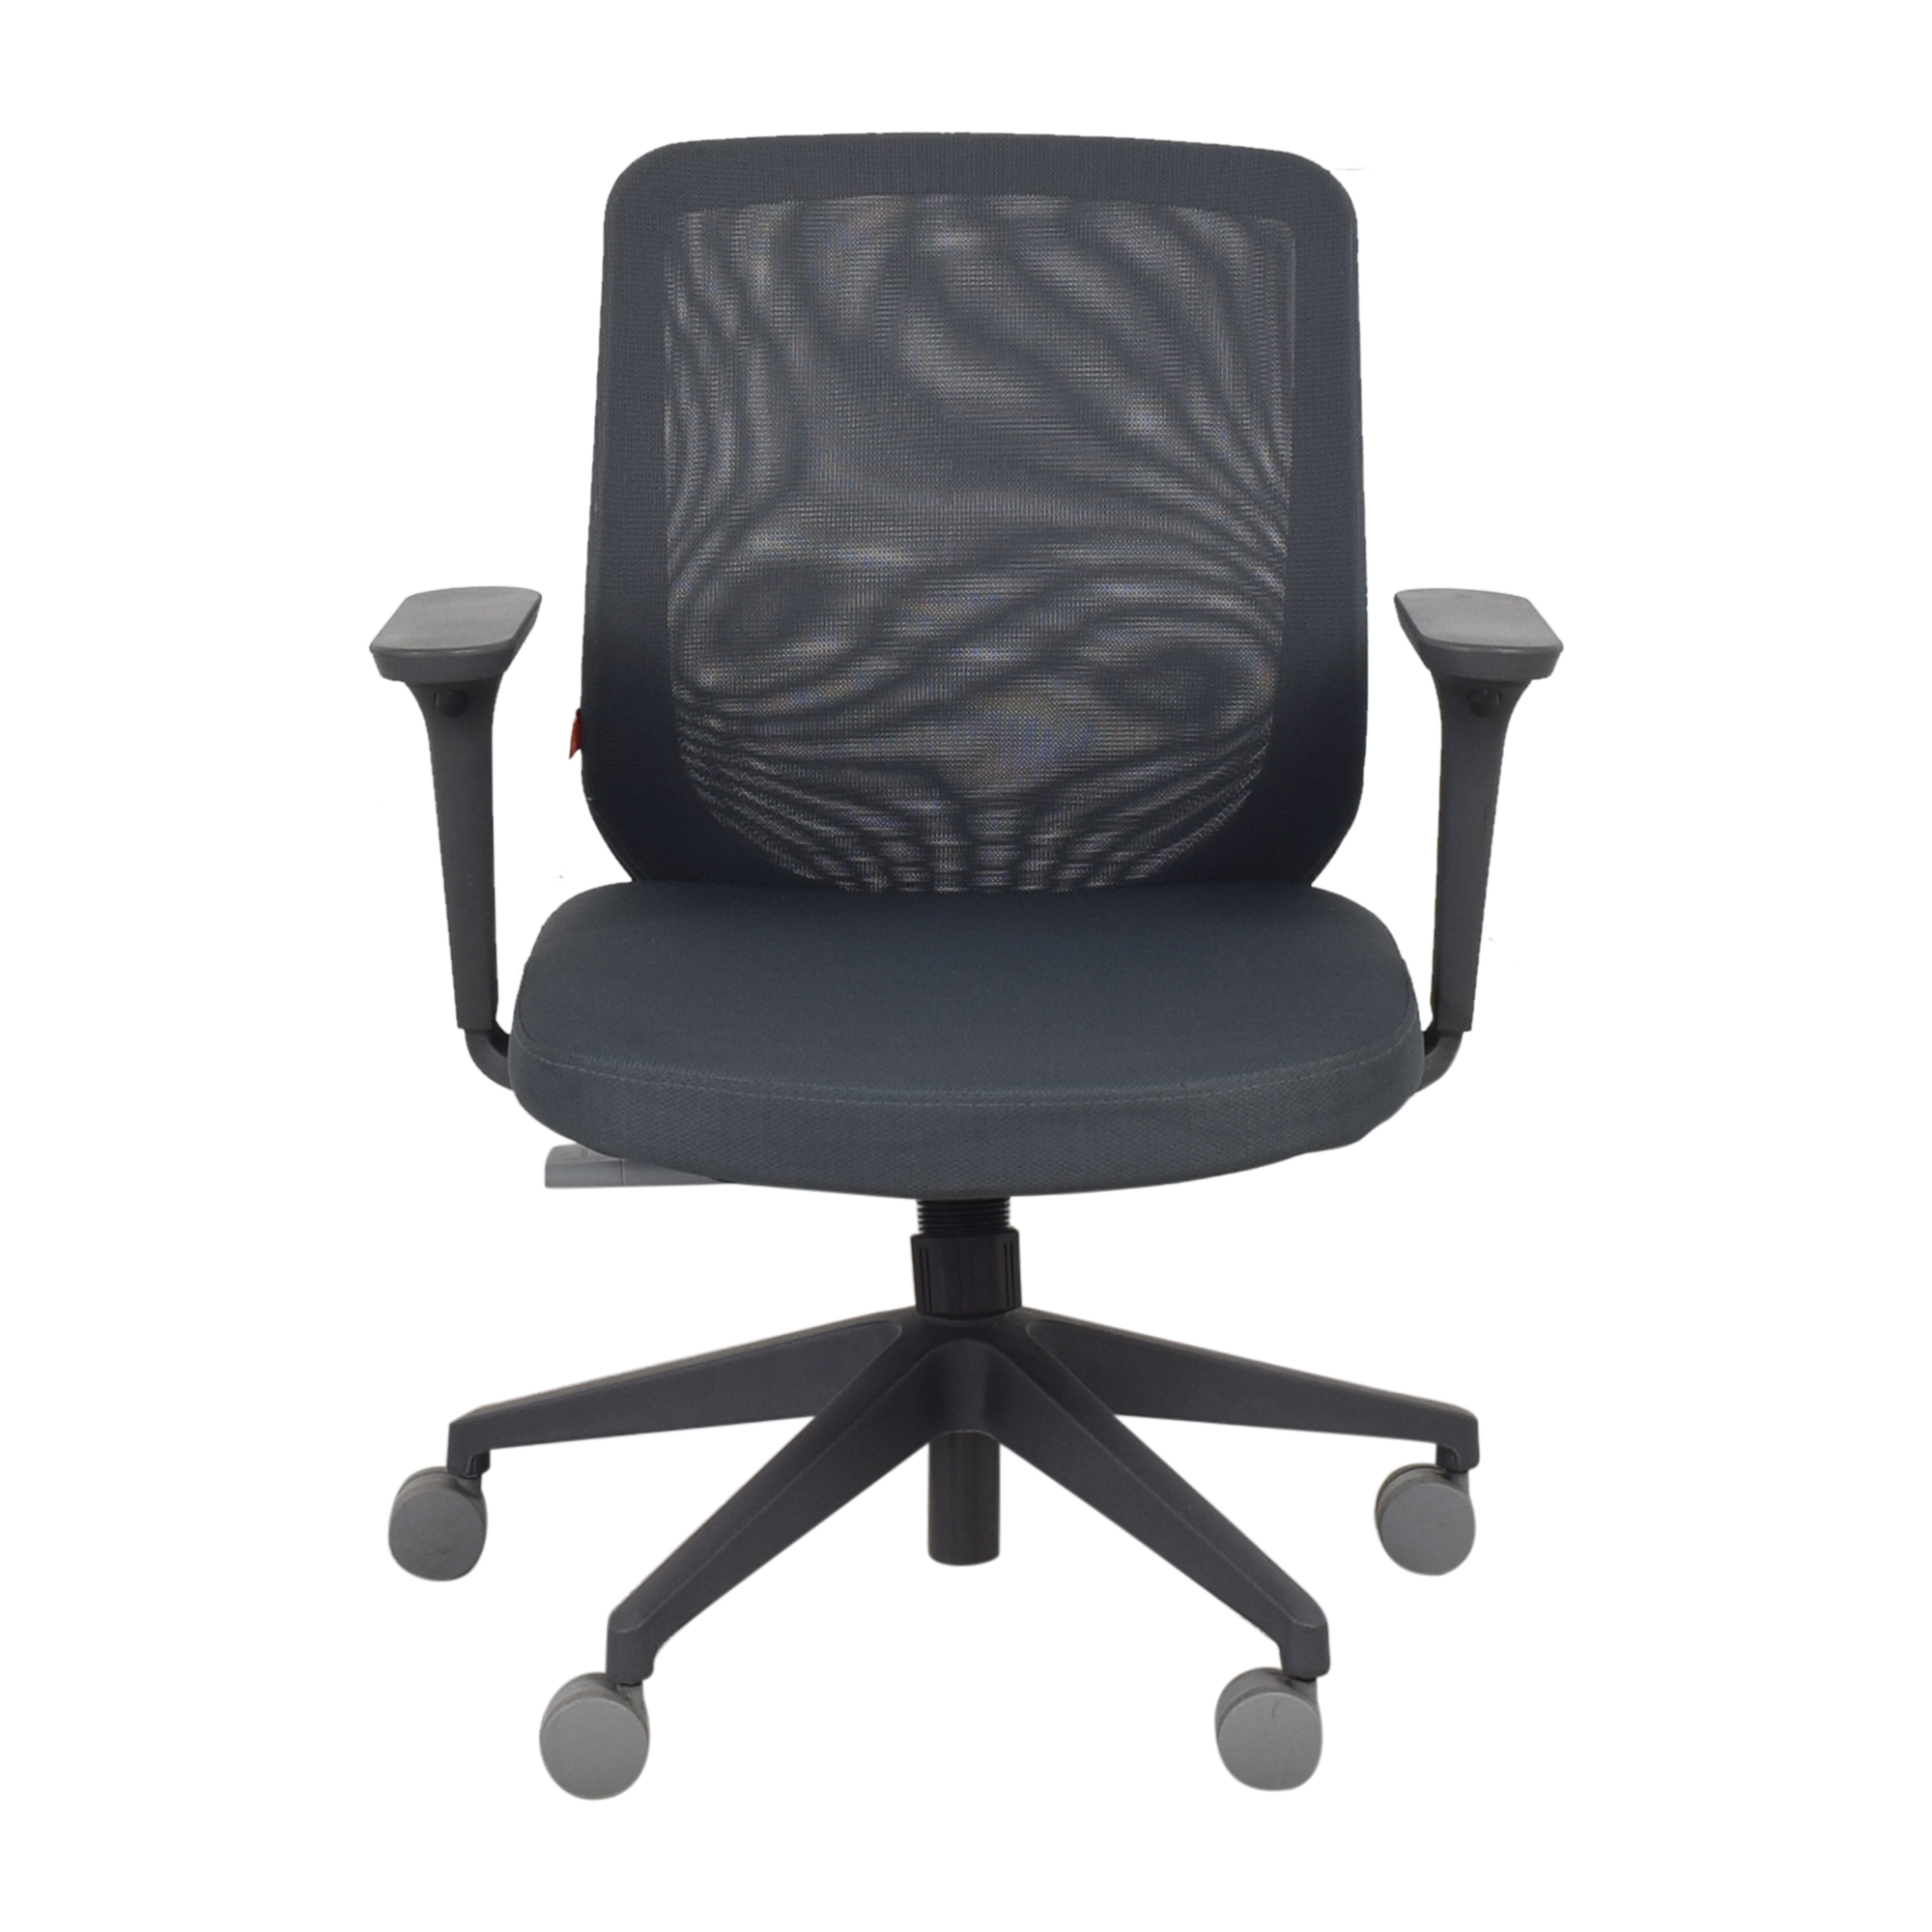 Poppin Poppin Max Task Chair dimensions